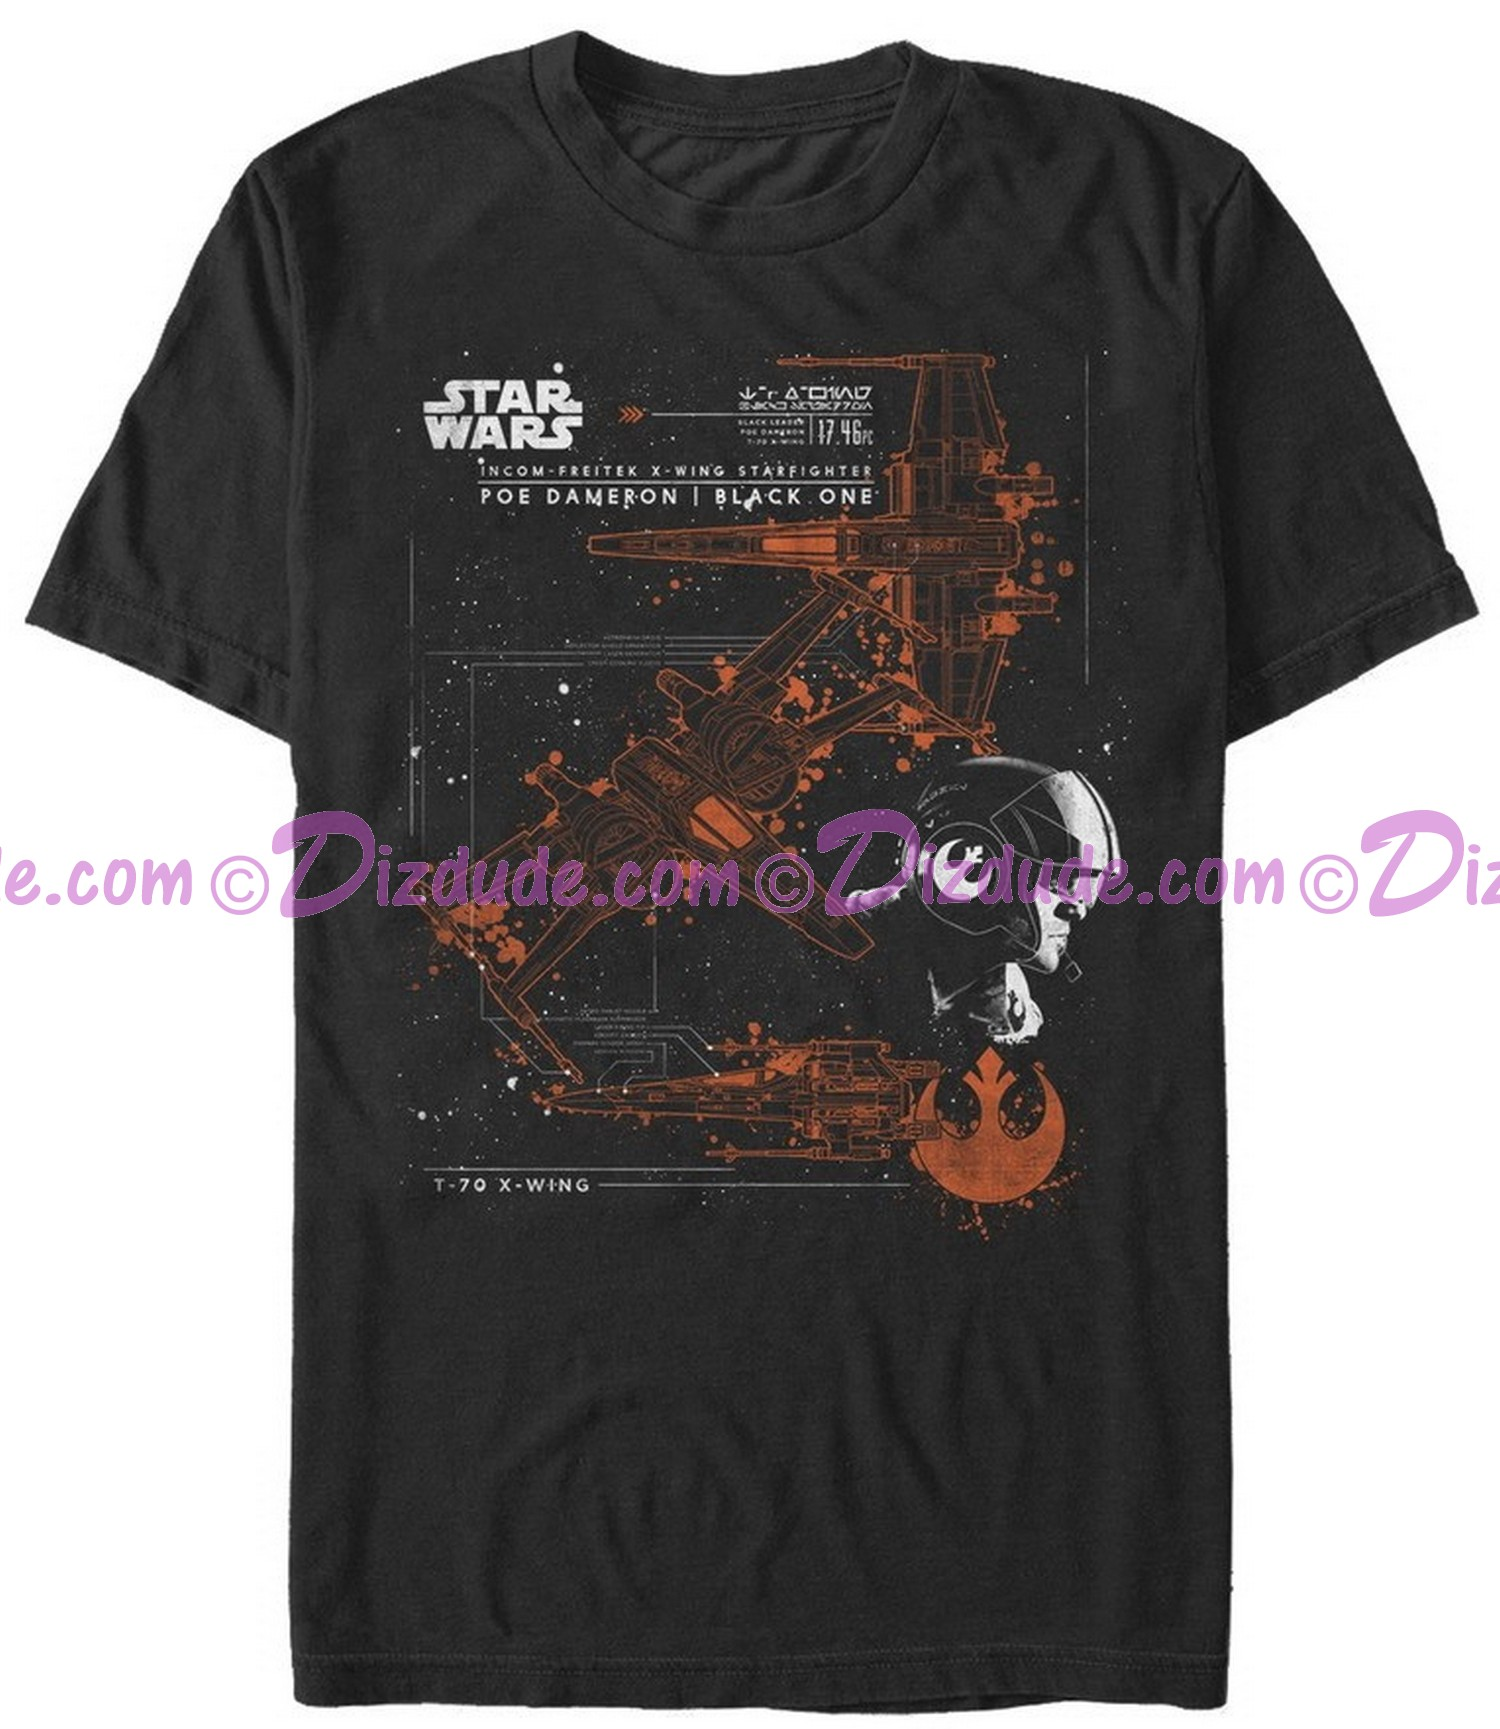 Star Wars The Last Jedi Poe Dameron's X-Wing Adult T-Shirt (Tshirt, T shirt or Tee) © Dizdude.com